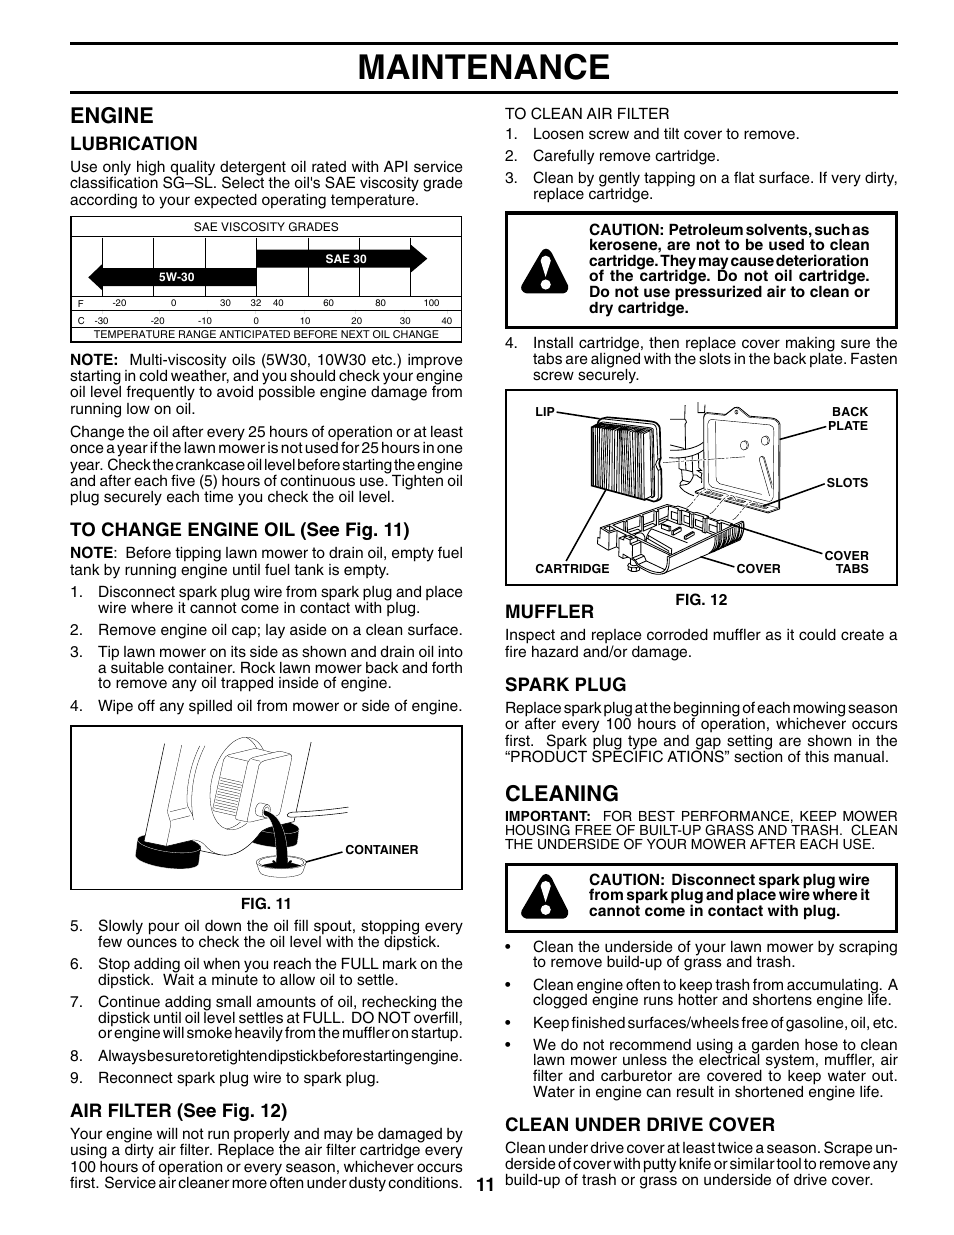 medium resolution of maintenance engine cleaning husqvarna 65021chv user manual page 11 20